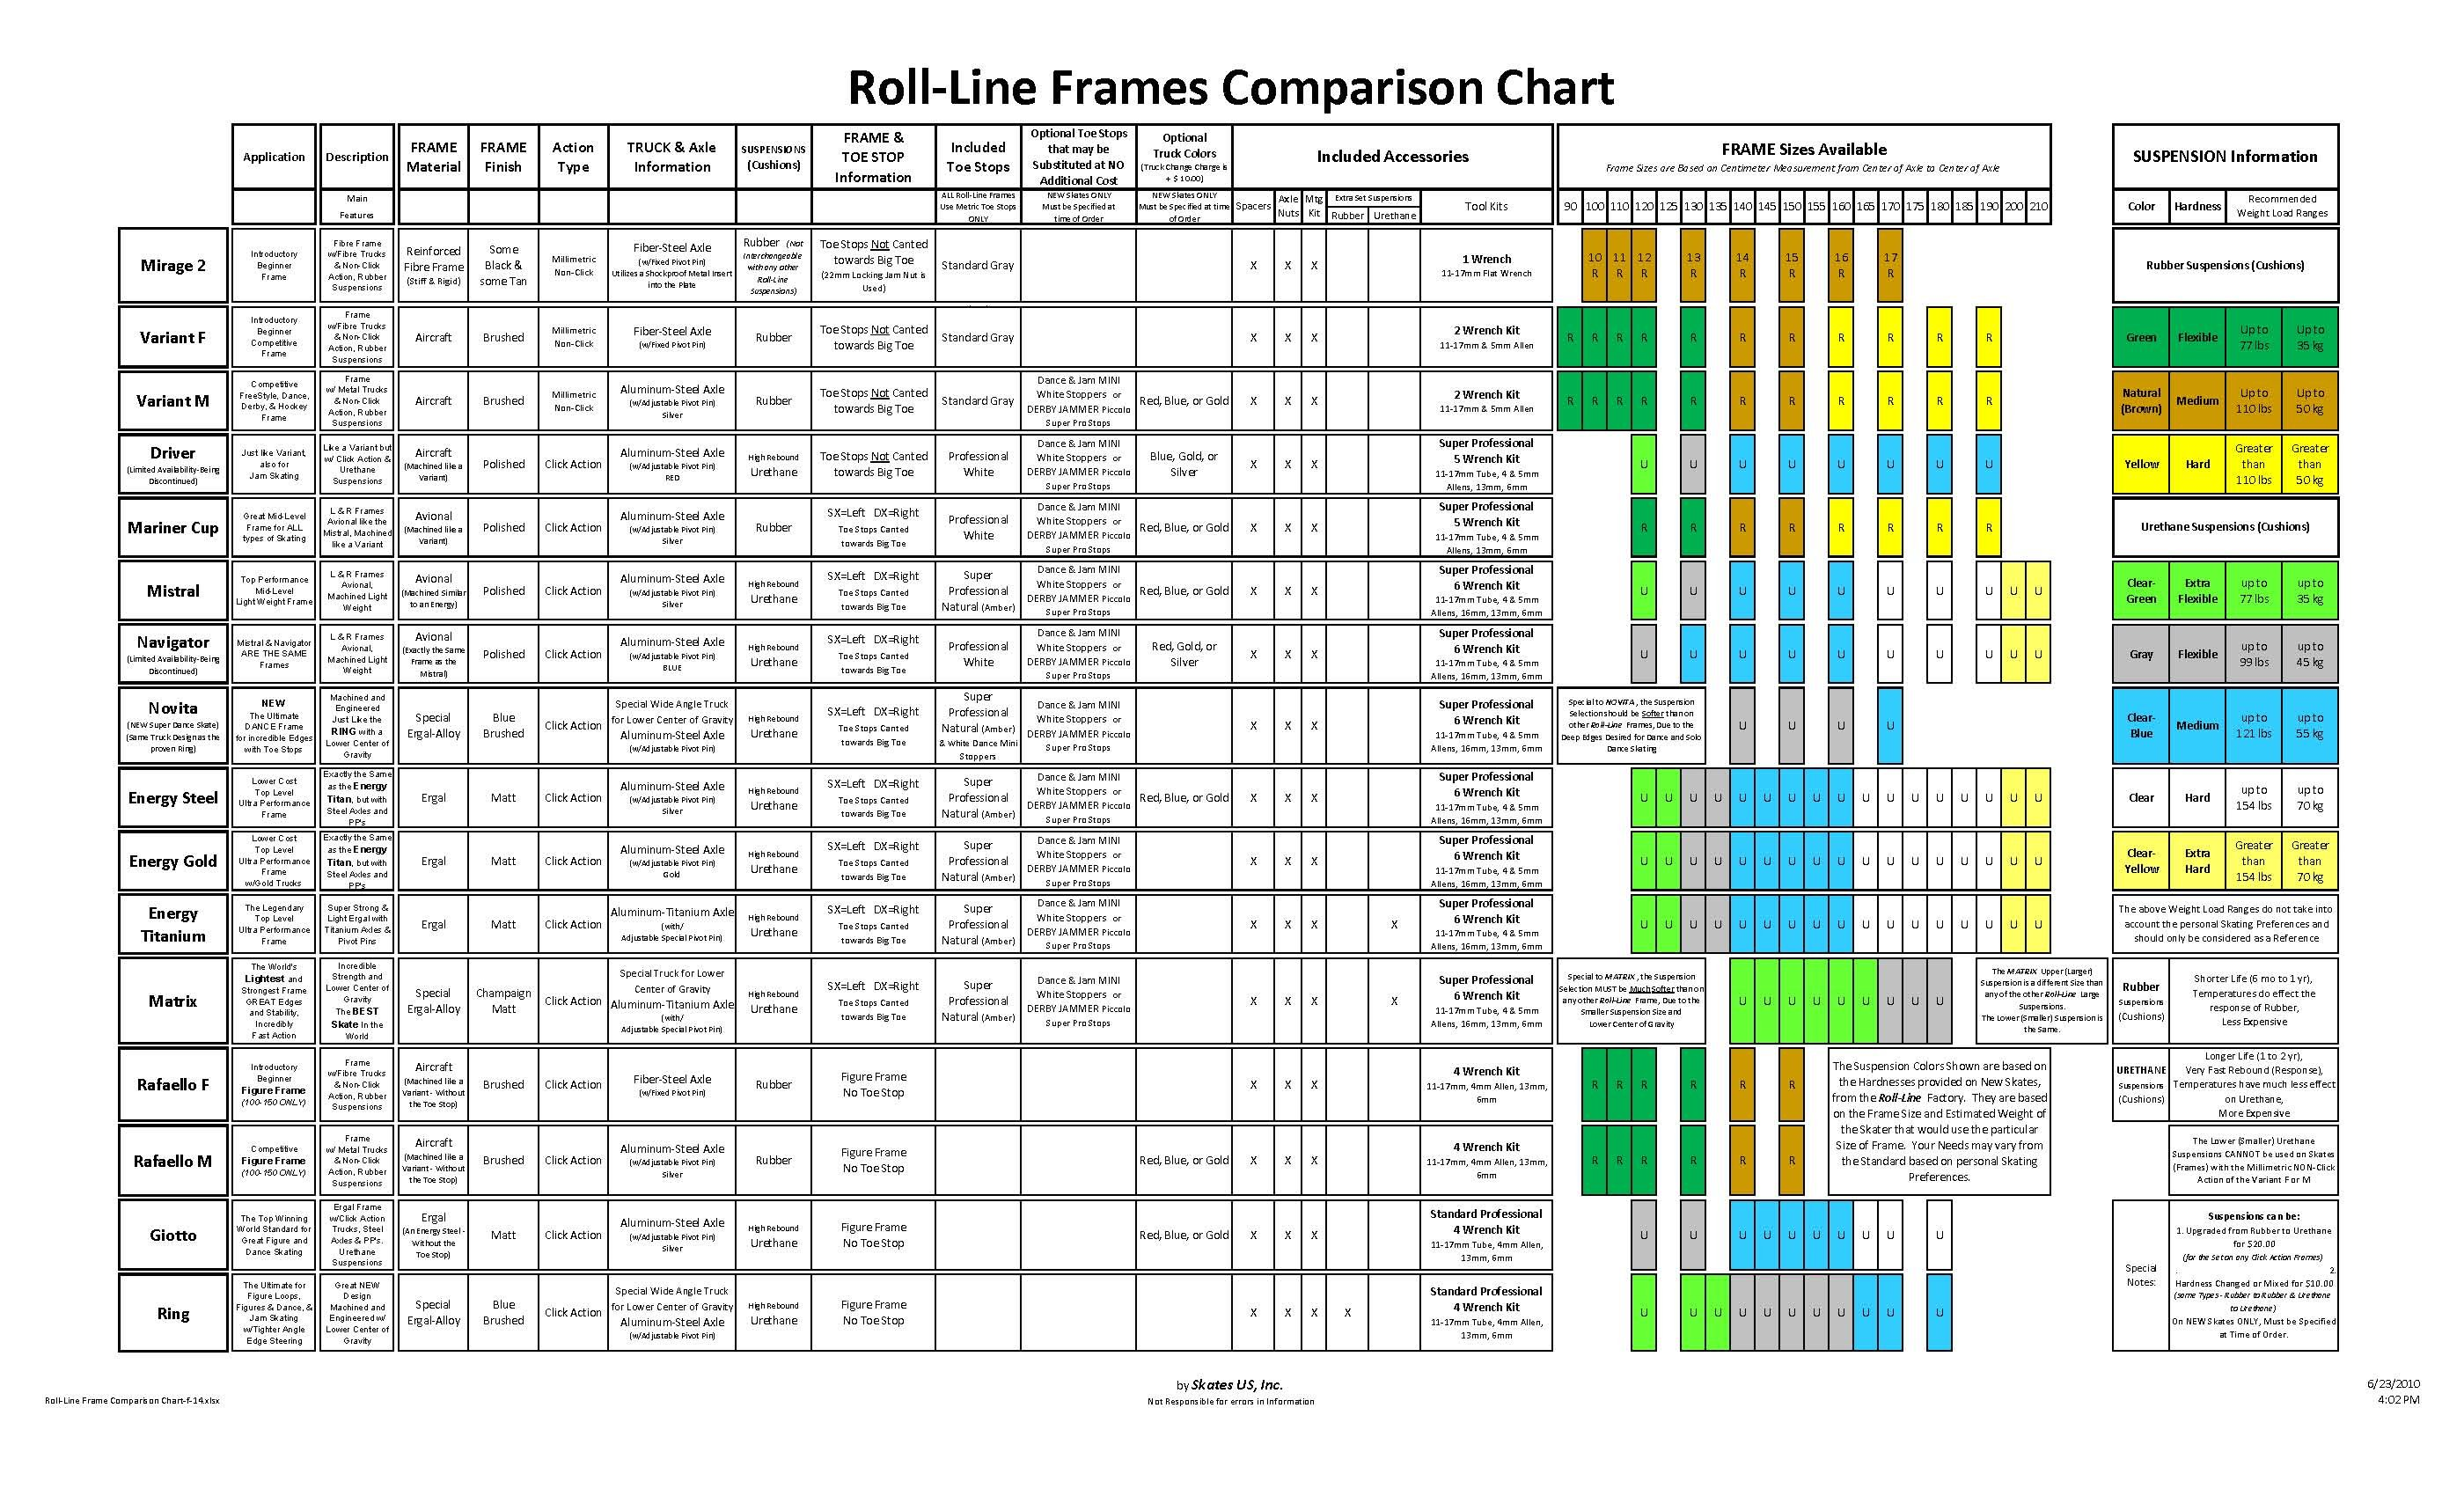 Roll line frame comparison and technical charts skates us click this link to download the 85 x 14 1 page g image of the chart nvjuhfo Gallery